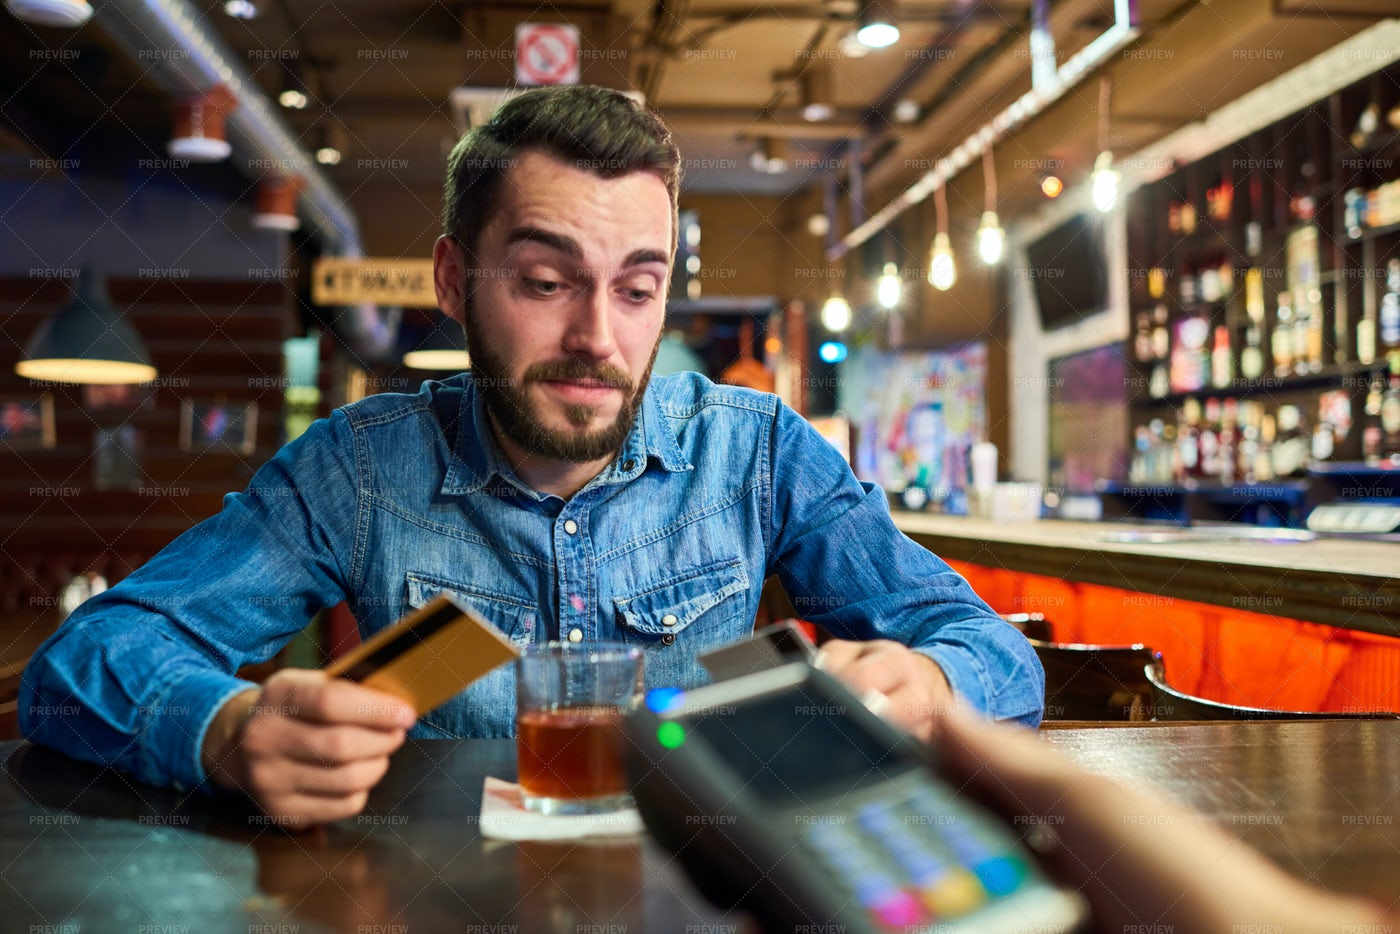 Drunk Man Paying Via Credit Card In...: Stock Photos